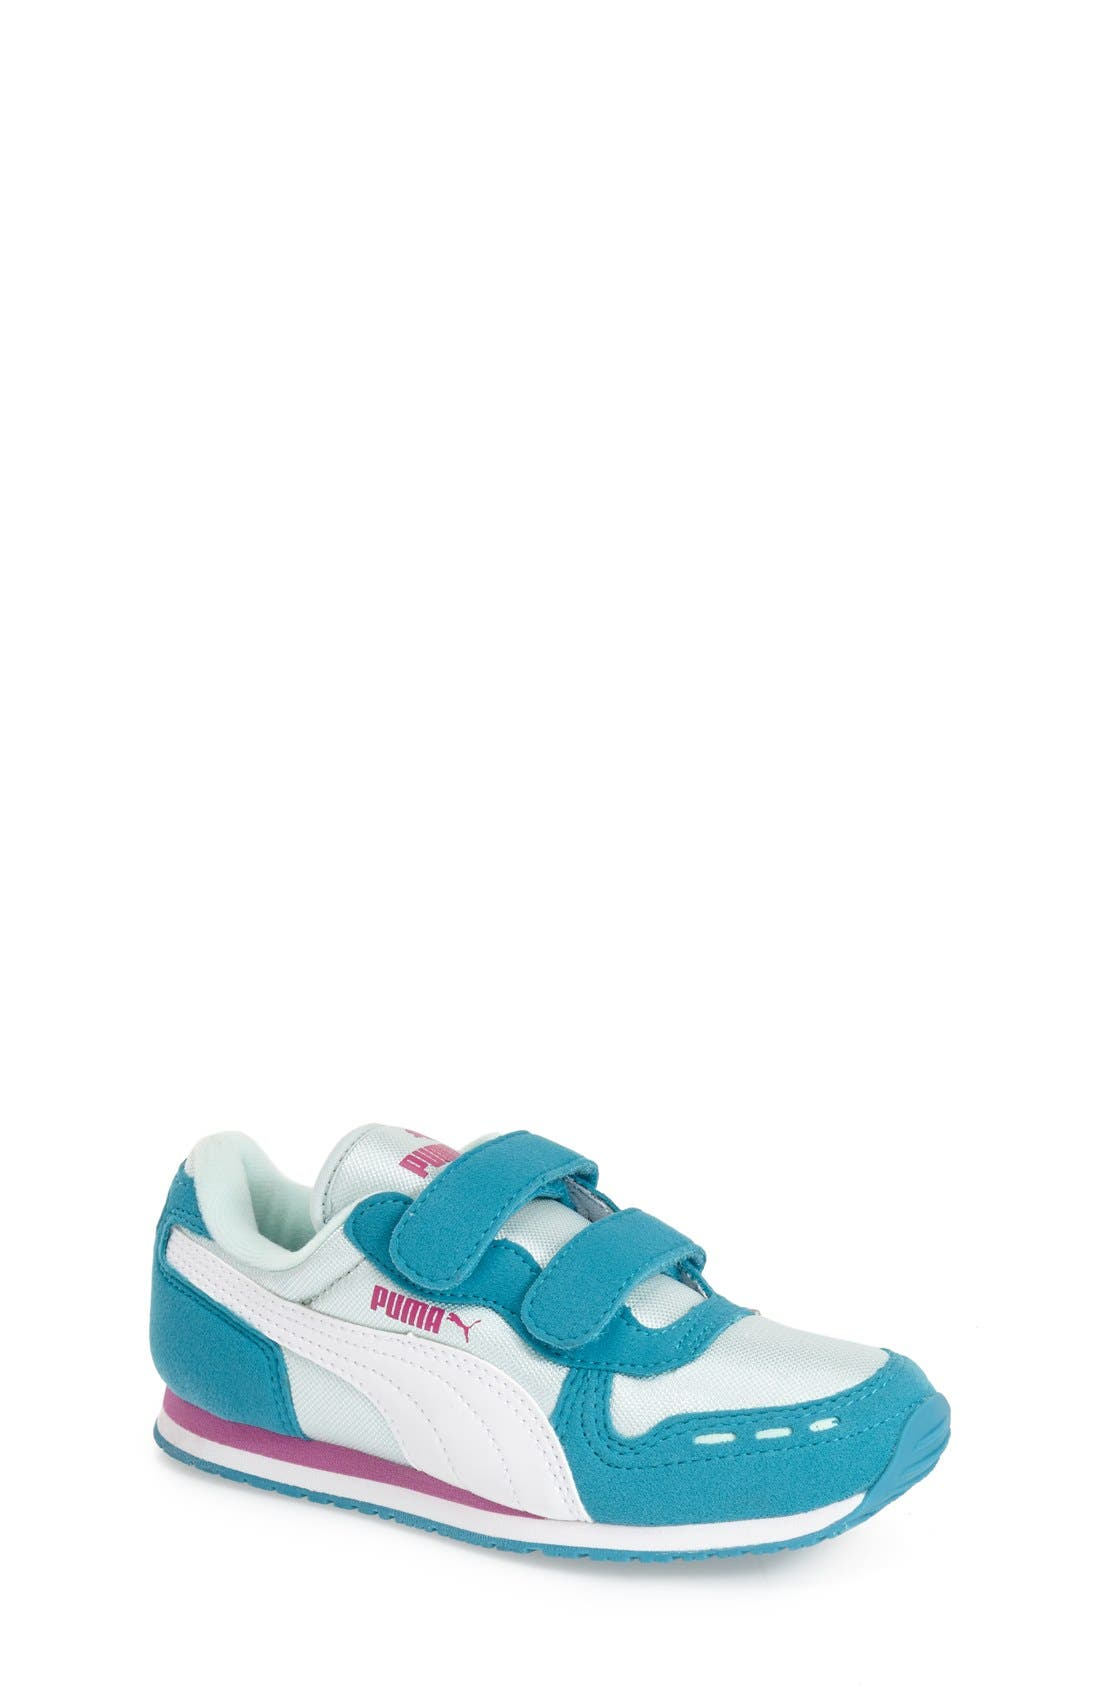 Main Image - PUMA 'Cabana Racer' Sneaker (Baby, Walker, Toddler & Little Kid)